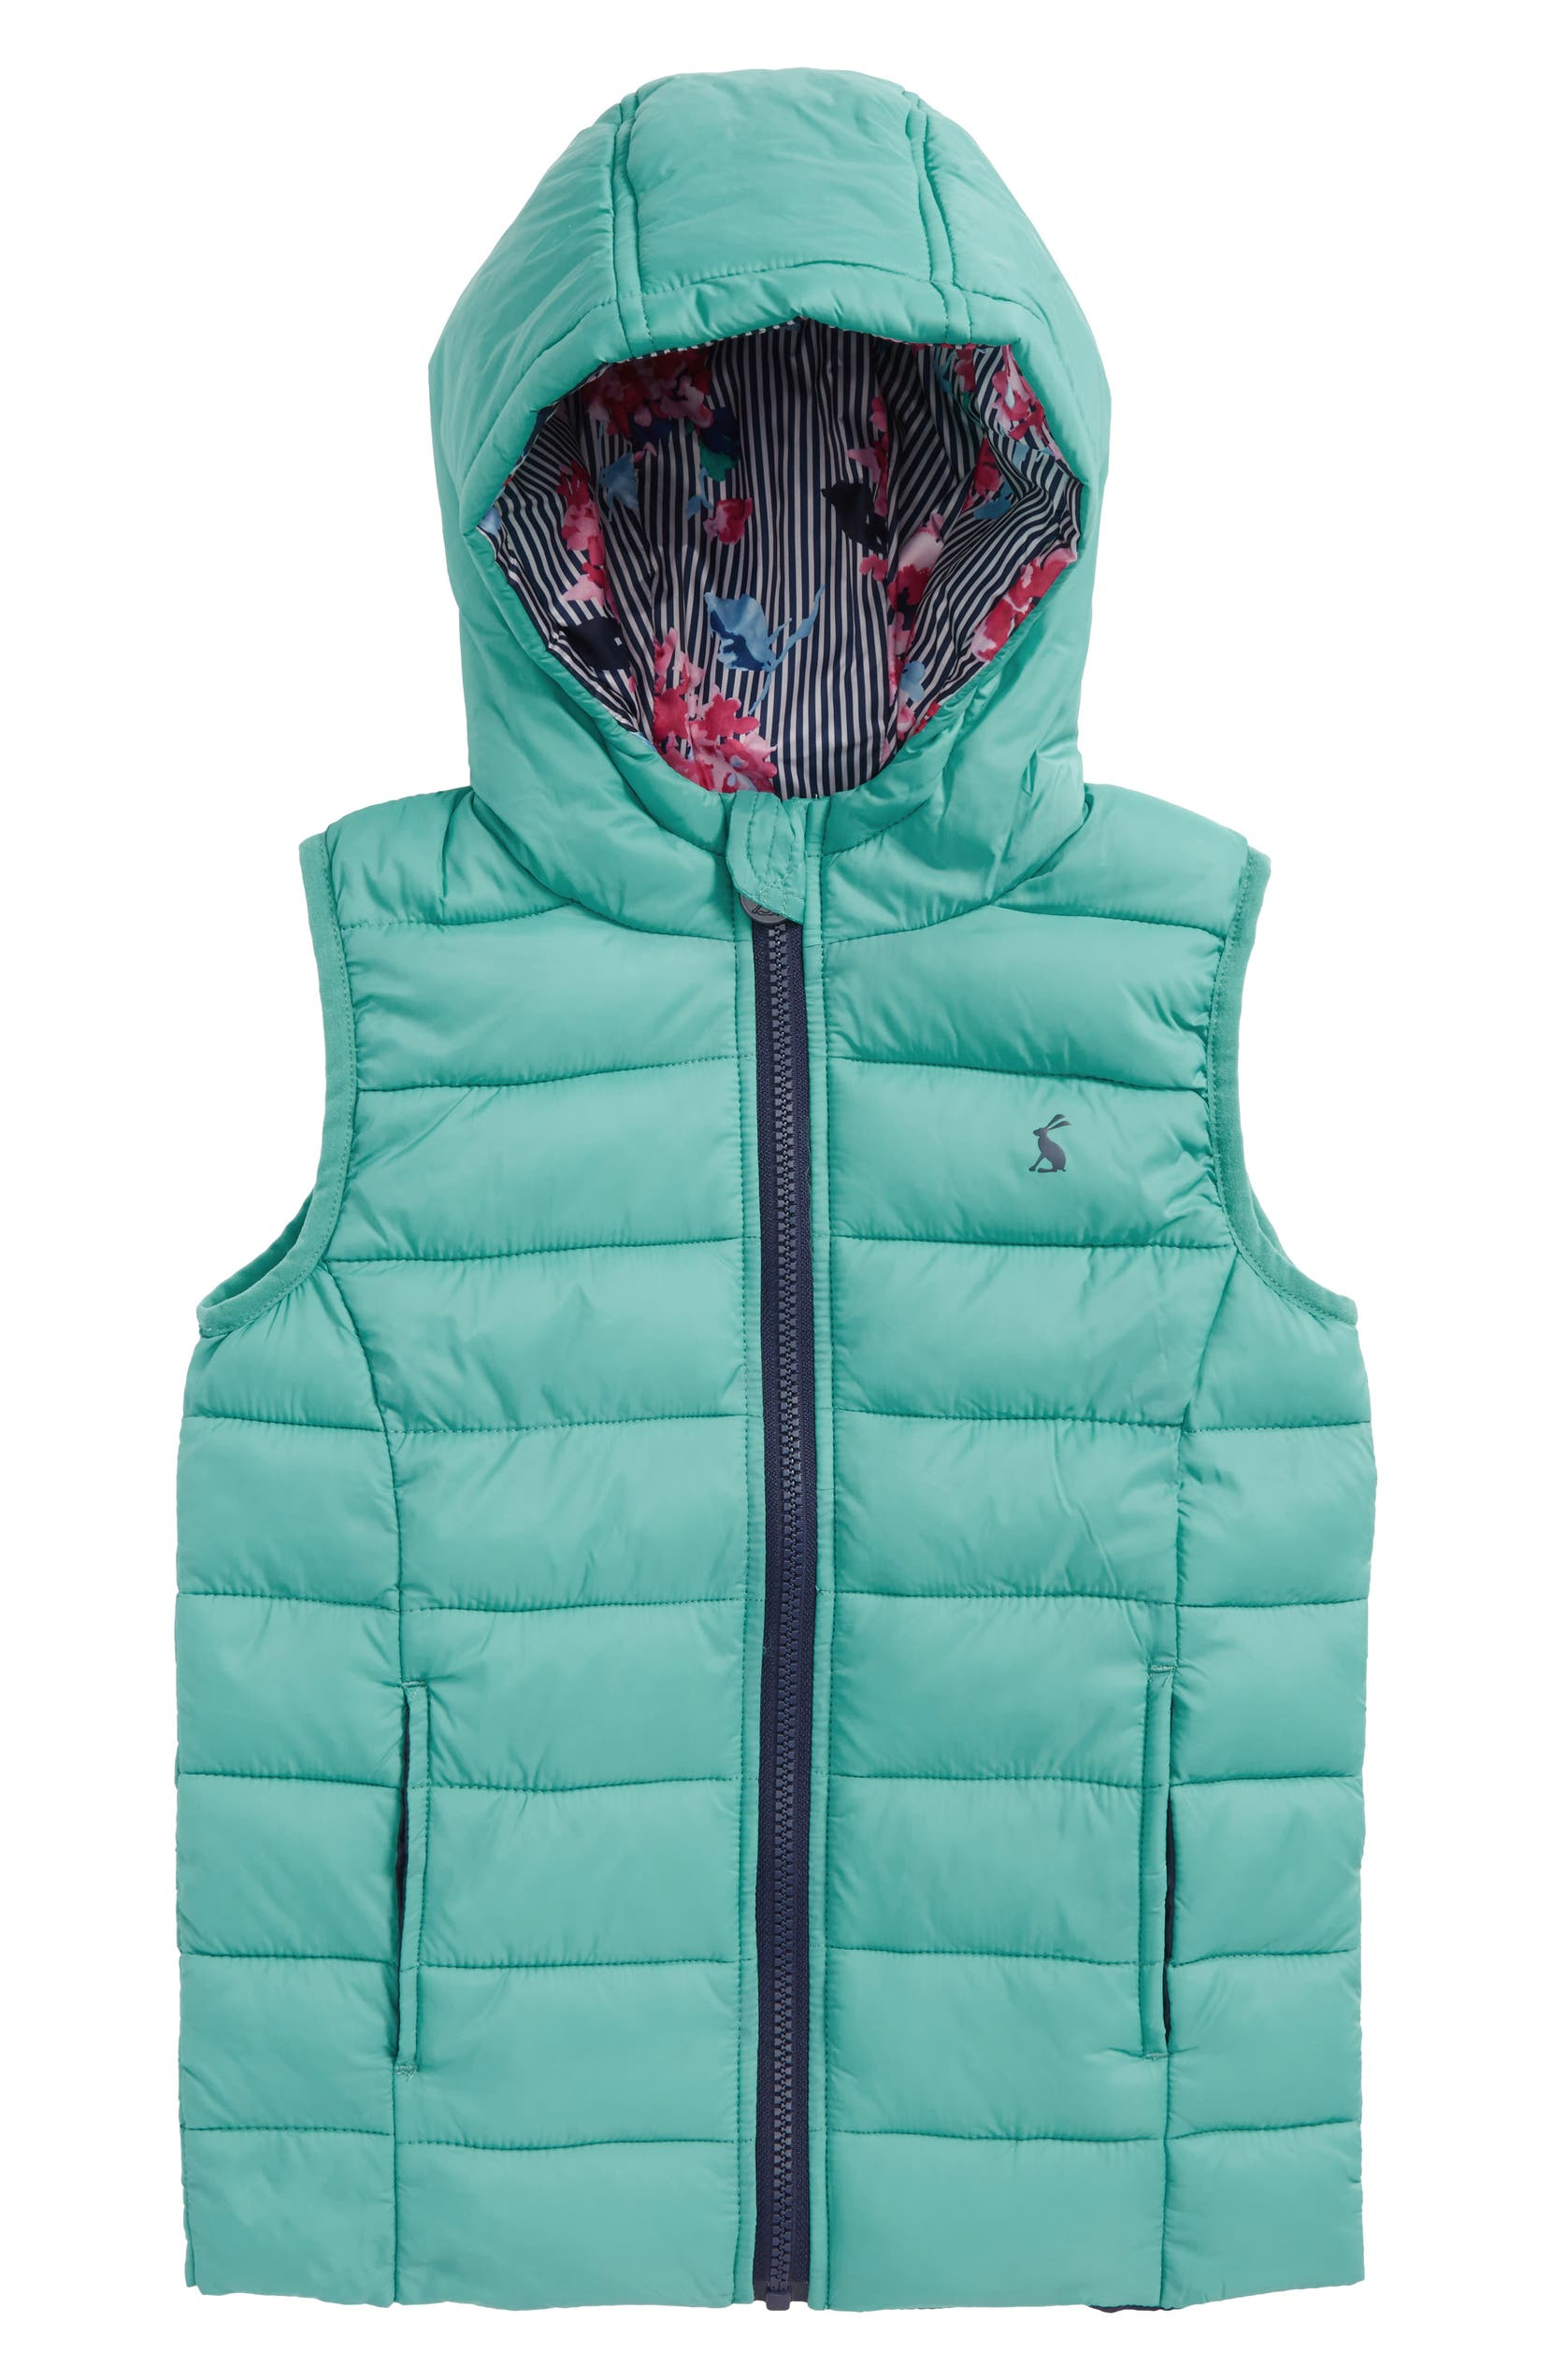 76b74989e3ec Joules Printed Packaway Vest (Toddler Girls   Little Girls)